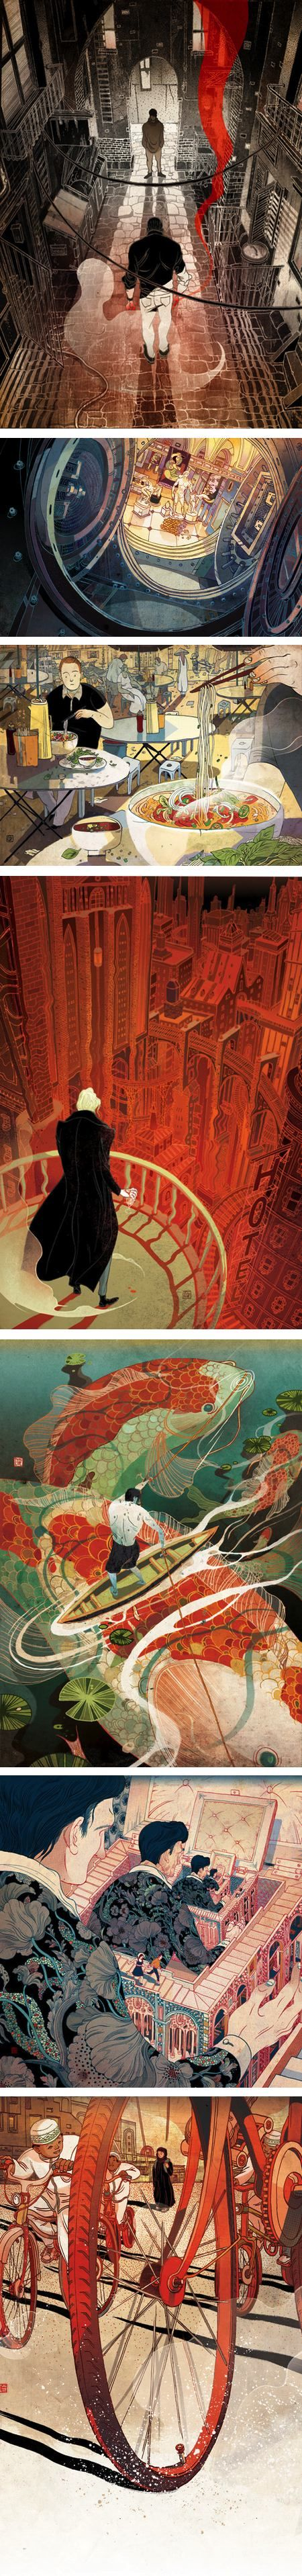 Victo Ngai is an illustrator, originally from Hong Kong, now based in New York.